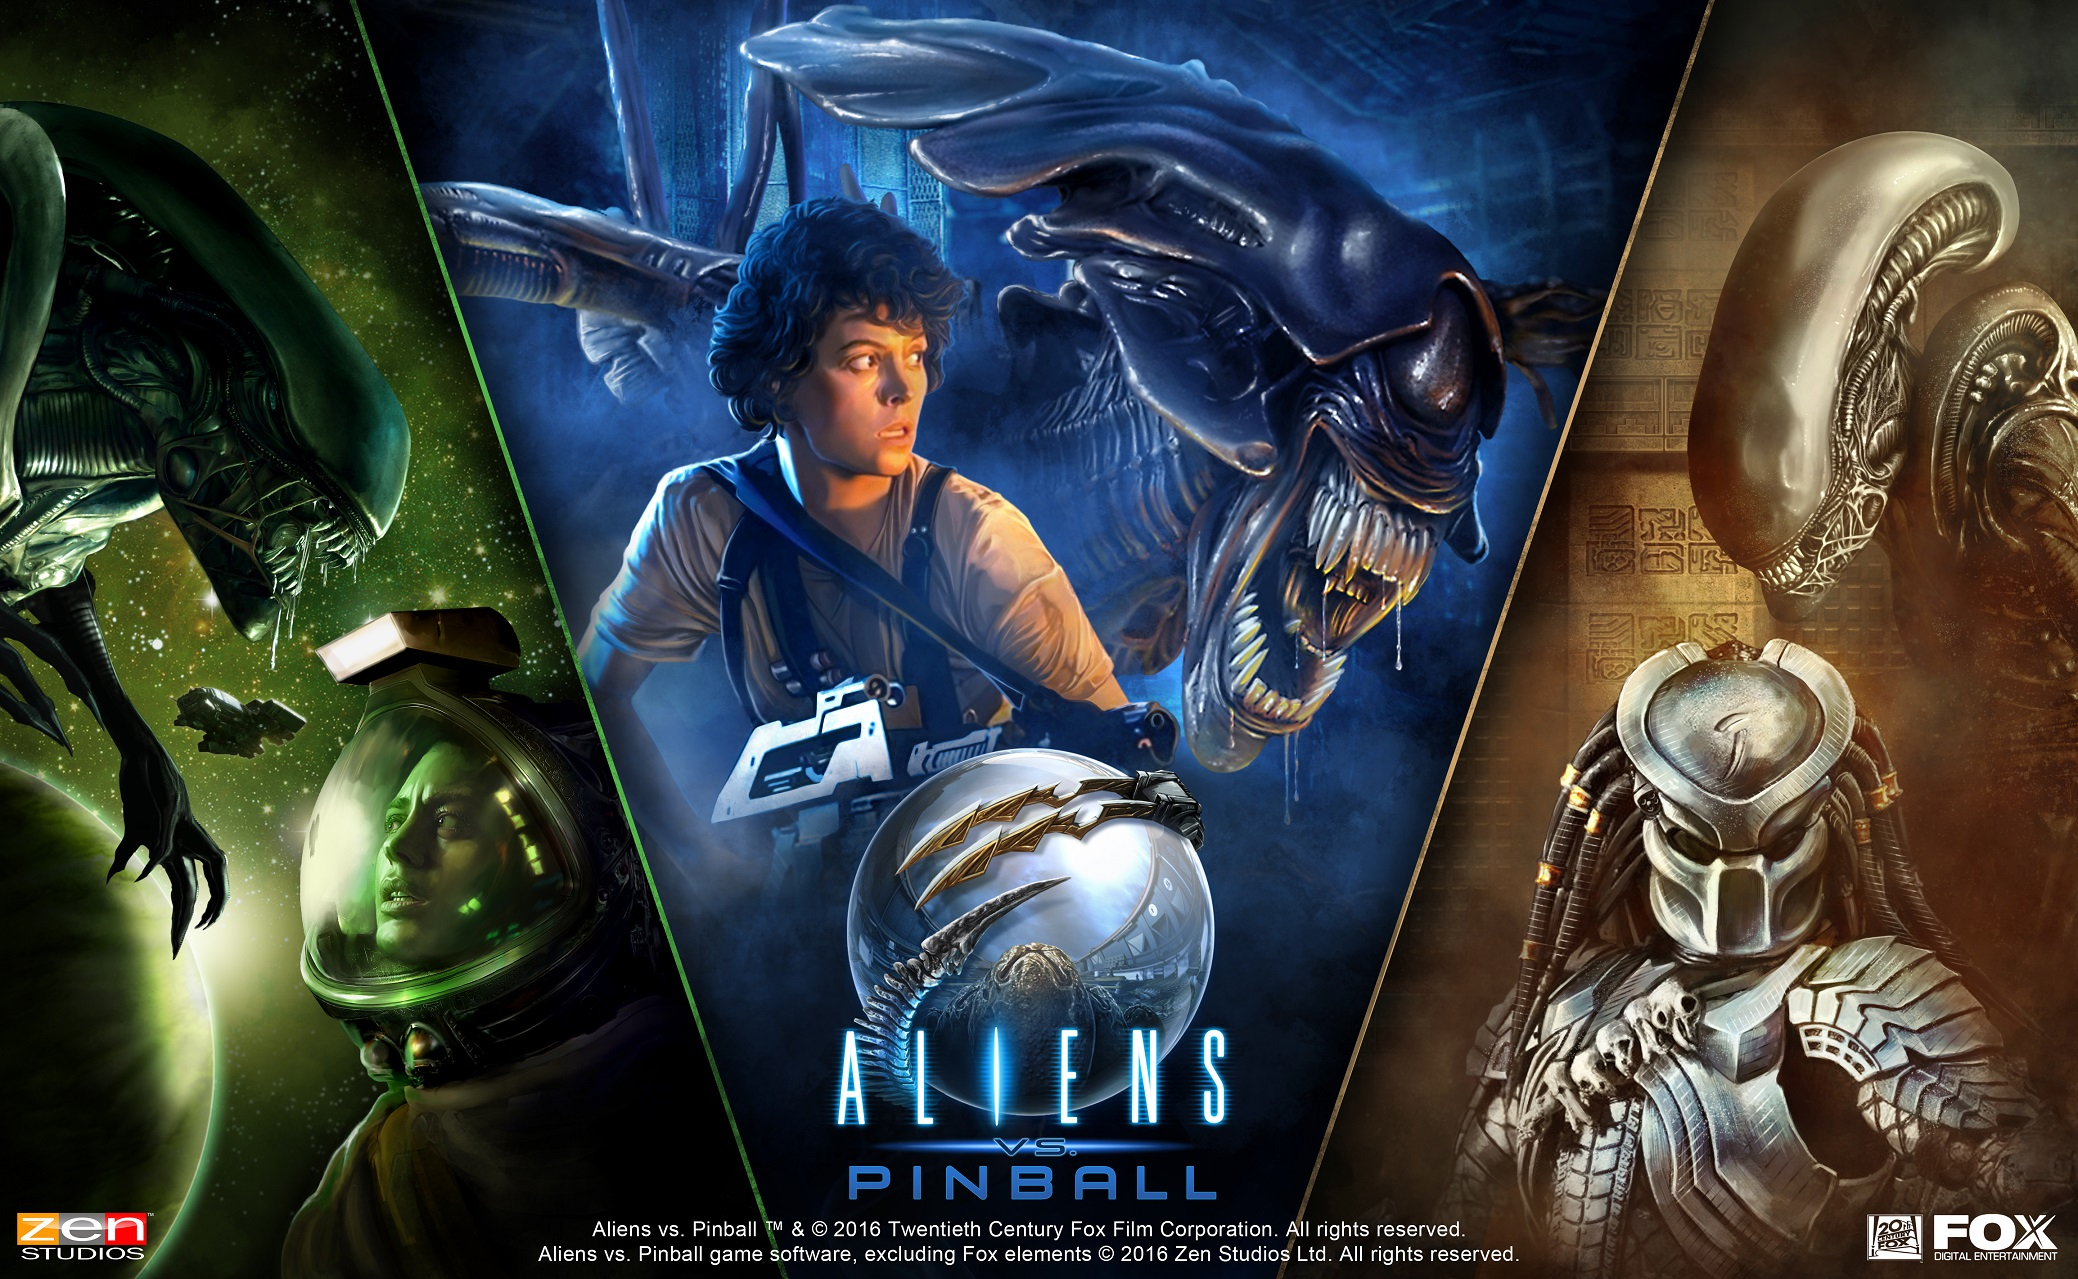 Modojo | Aliens vs. Pinball Is An Awesome Throwback To Your Favorite Sci-Fi Flick